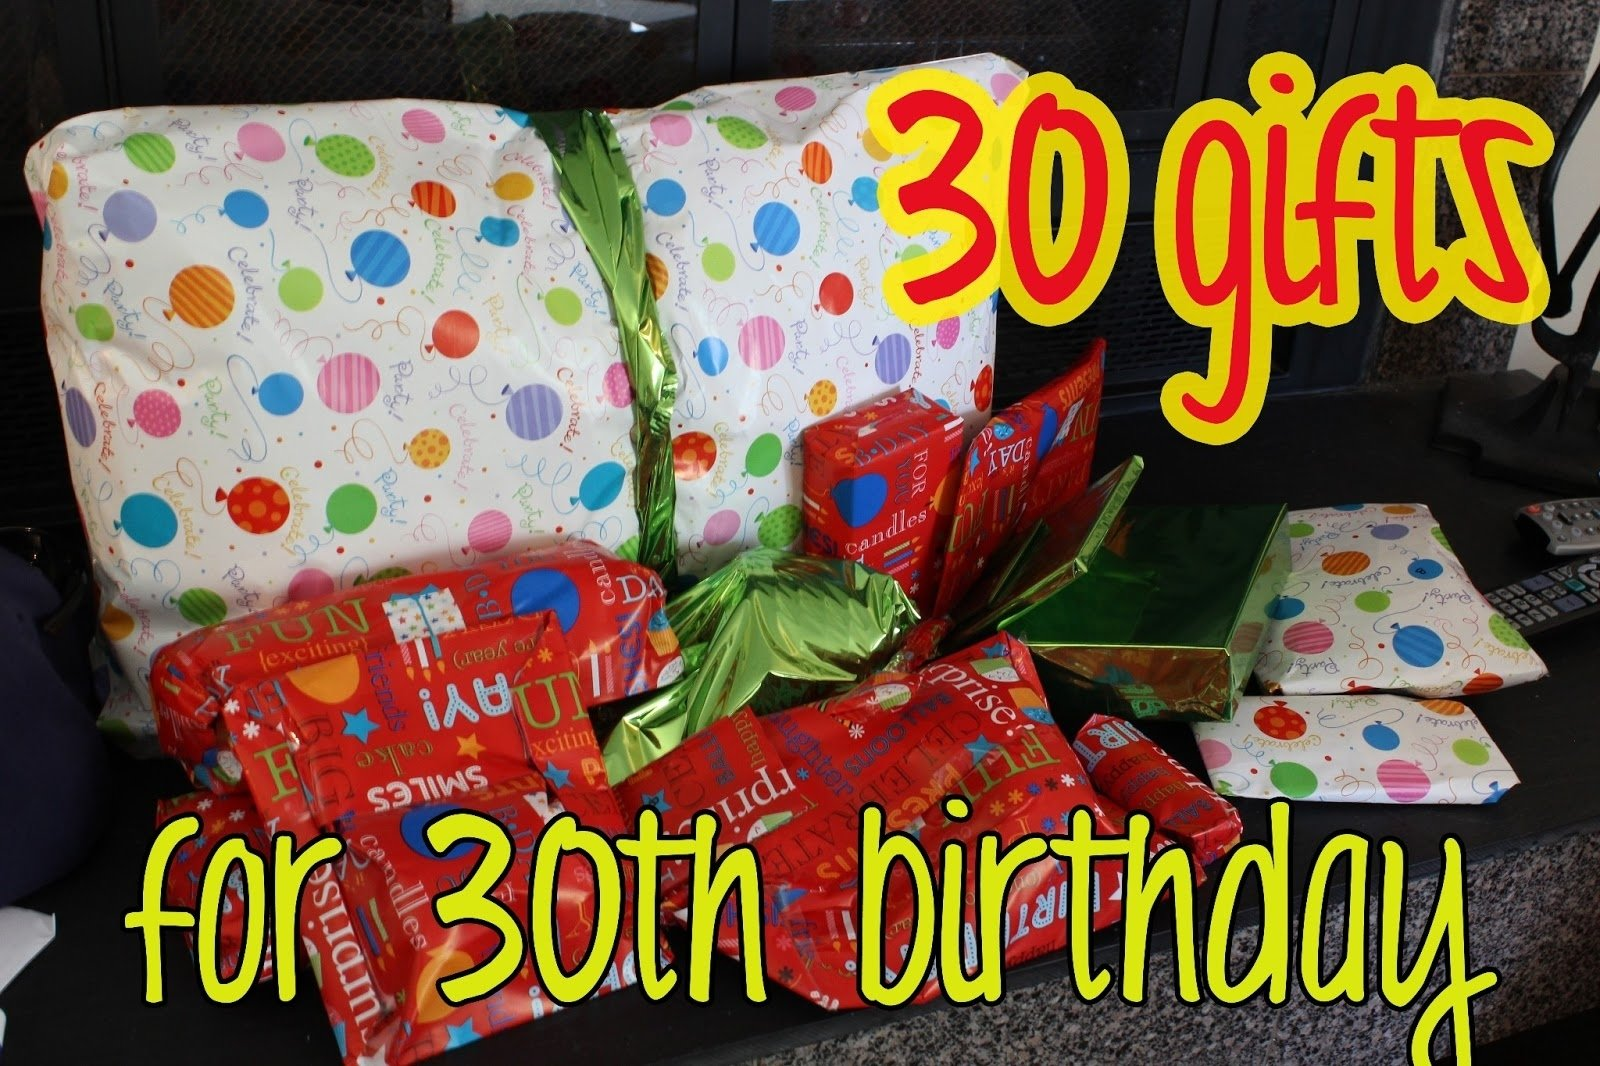 10 Amazing Ideas For 30Th Birthday For Him love elizabethany gift idea 30 gifts for 30th birthday 12